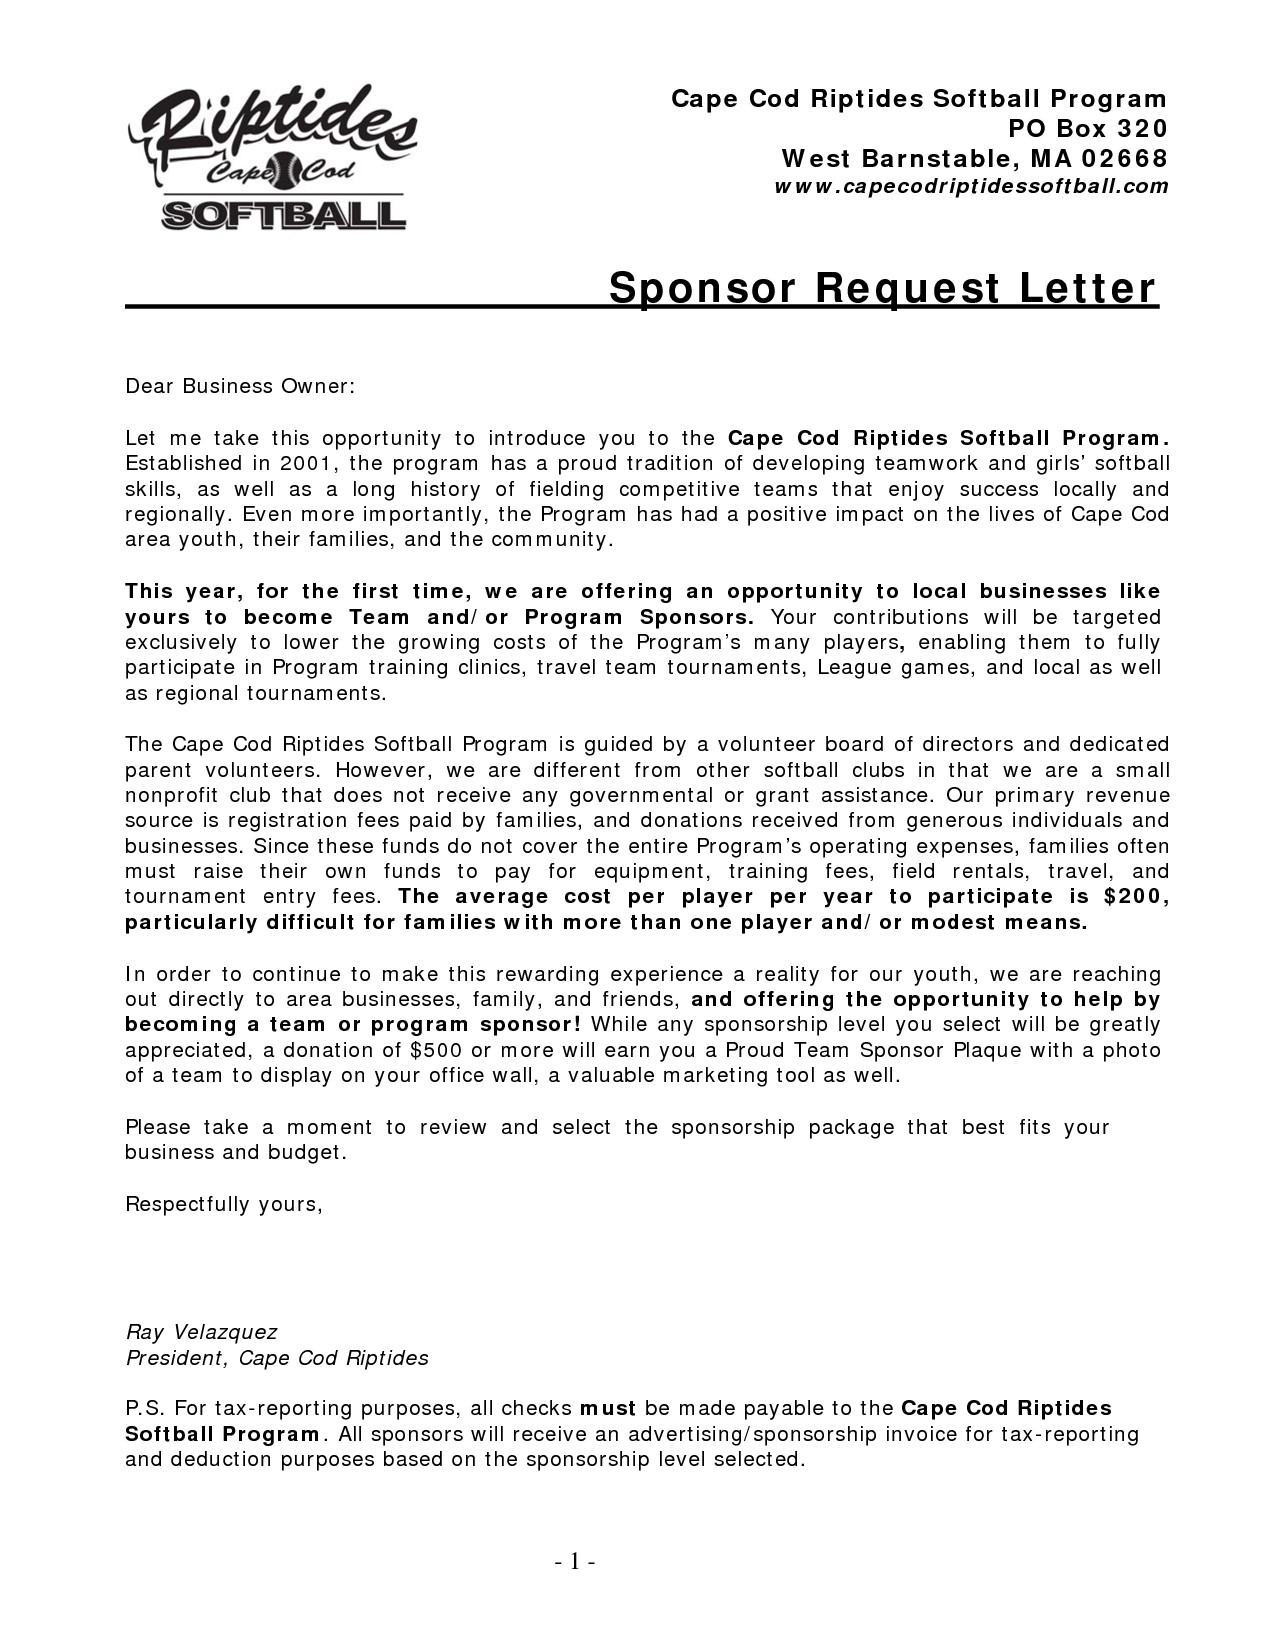 Donation Letter Template Pdf - Sponsorship Request Letter Pdf Save Sample Registration Letter